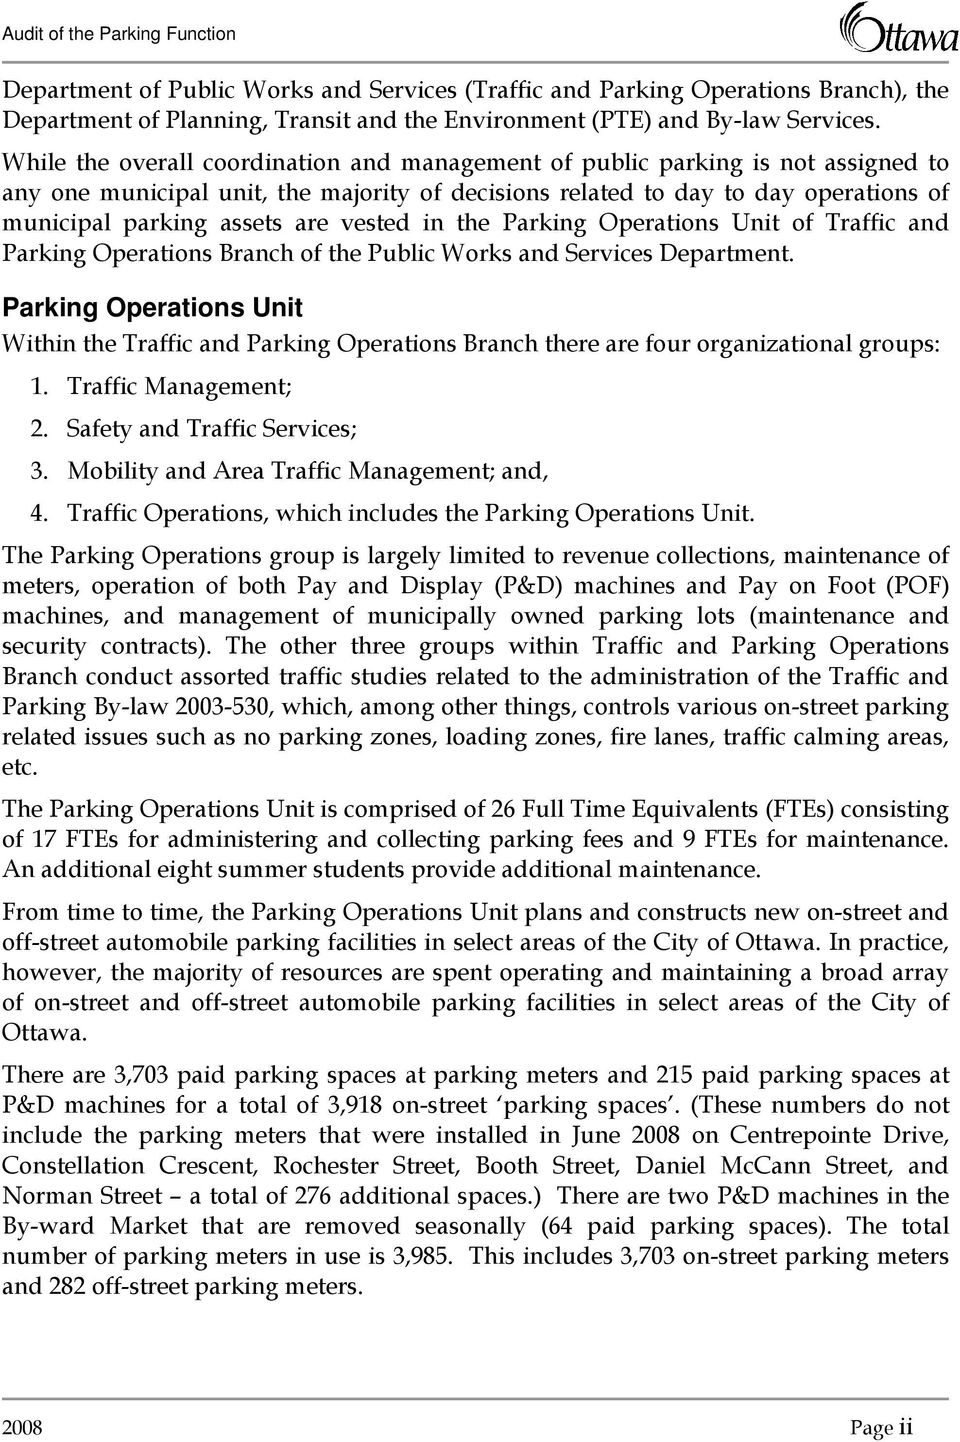 vested in the Parking Operations Unit of Traffic and Parking Operations Branch of the Public Works and Services Department.